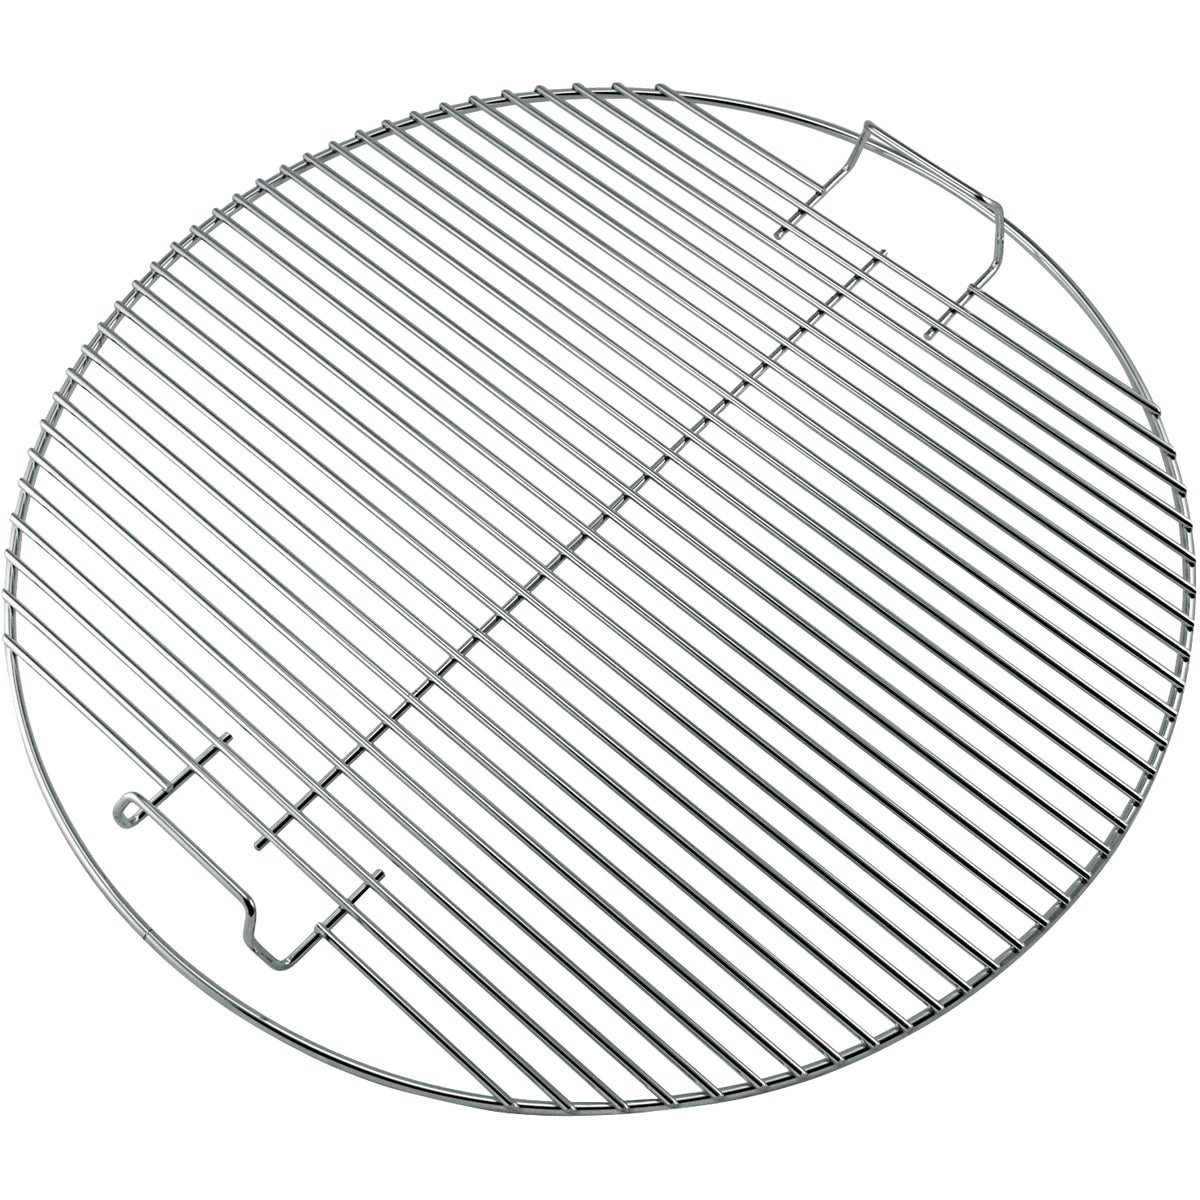 "22.5"" REPL COOKING GRATE - 7435 by Weber"